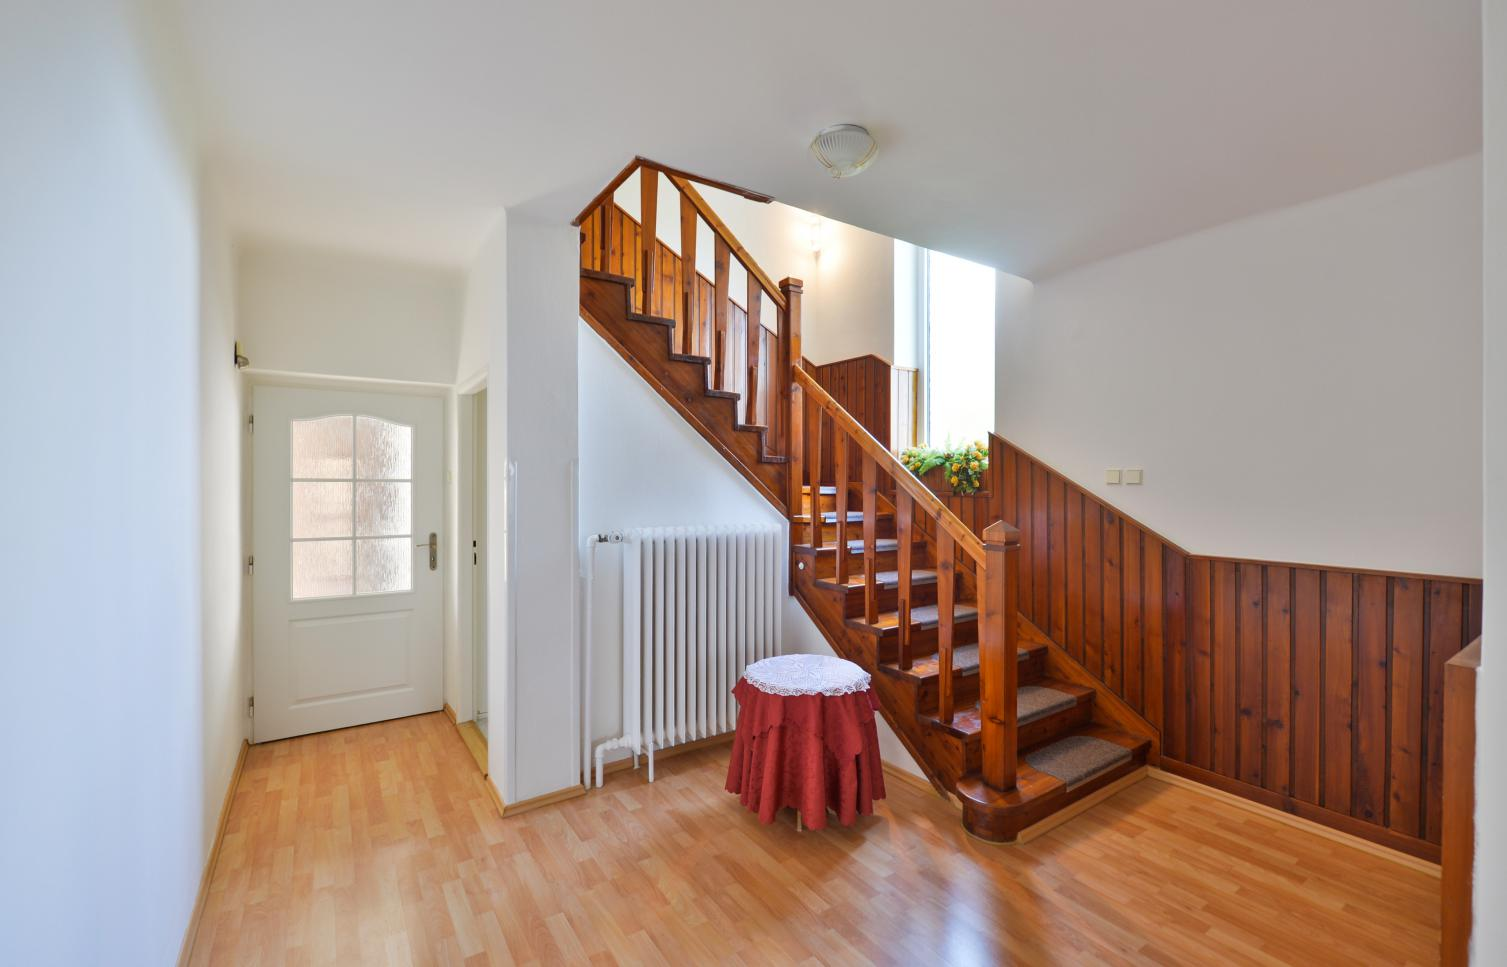 HOUSE FOR RENT, str. K Lažance, Prague 6 - Nebušice